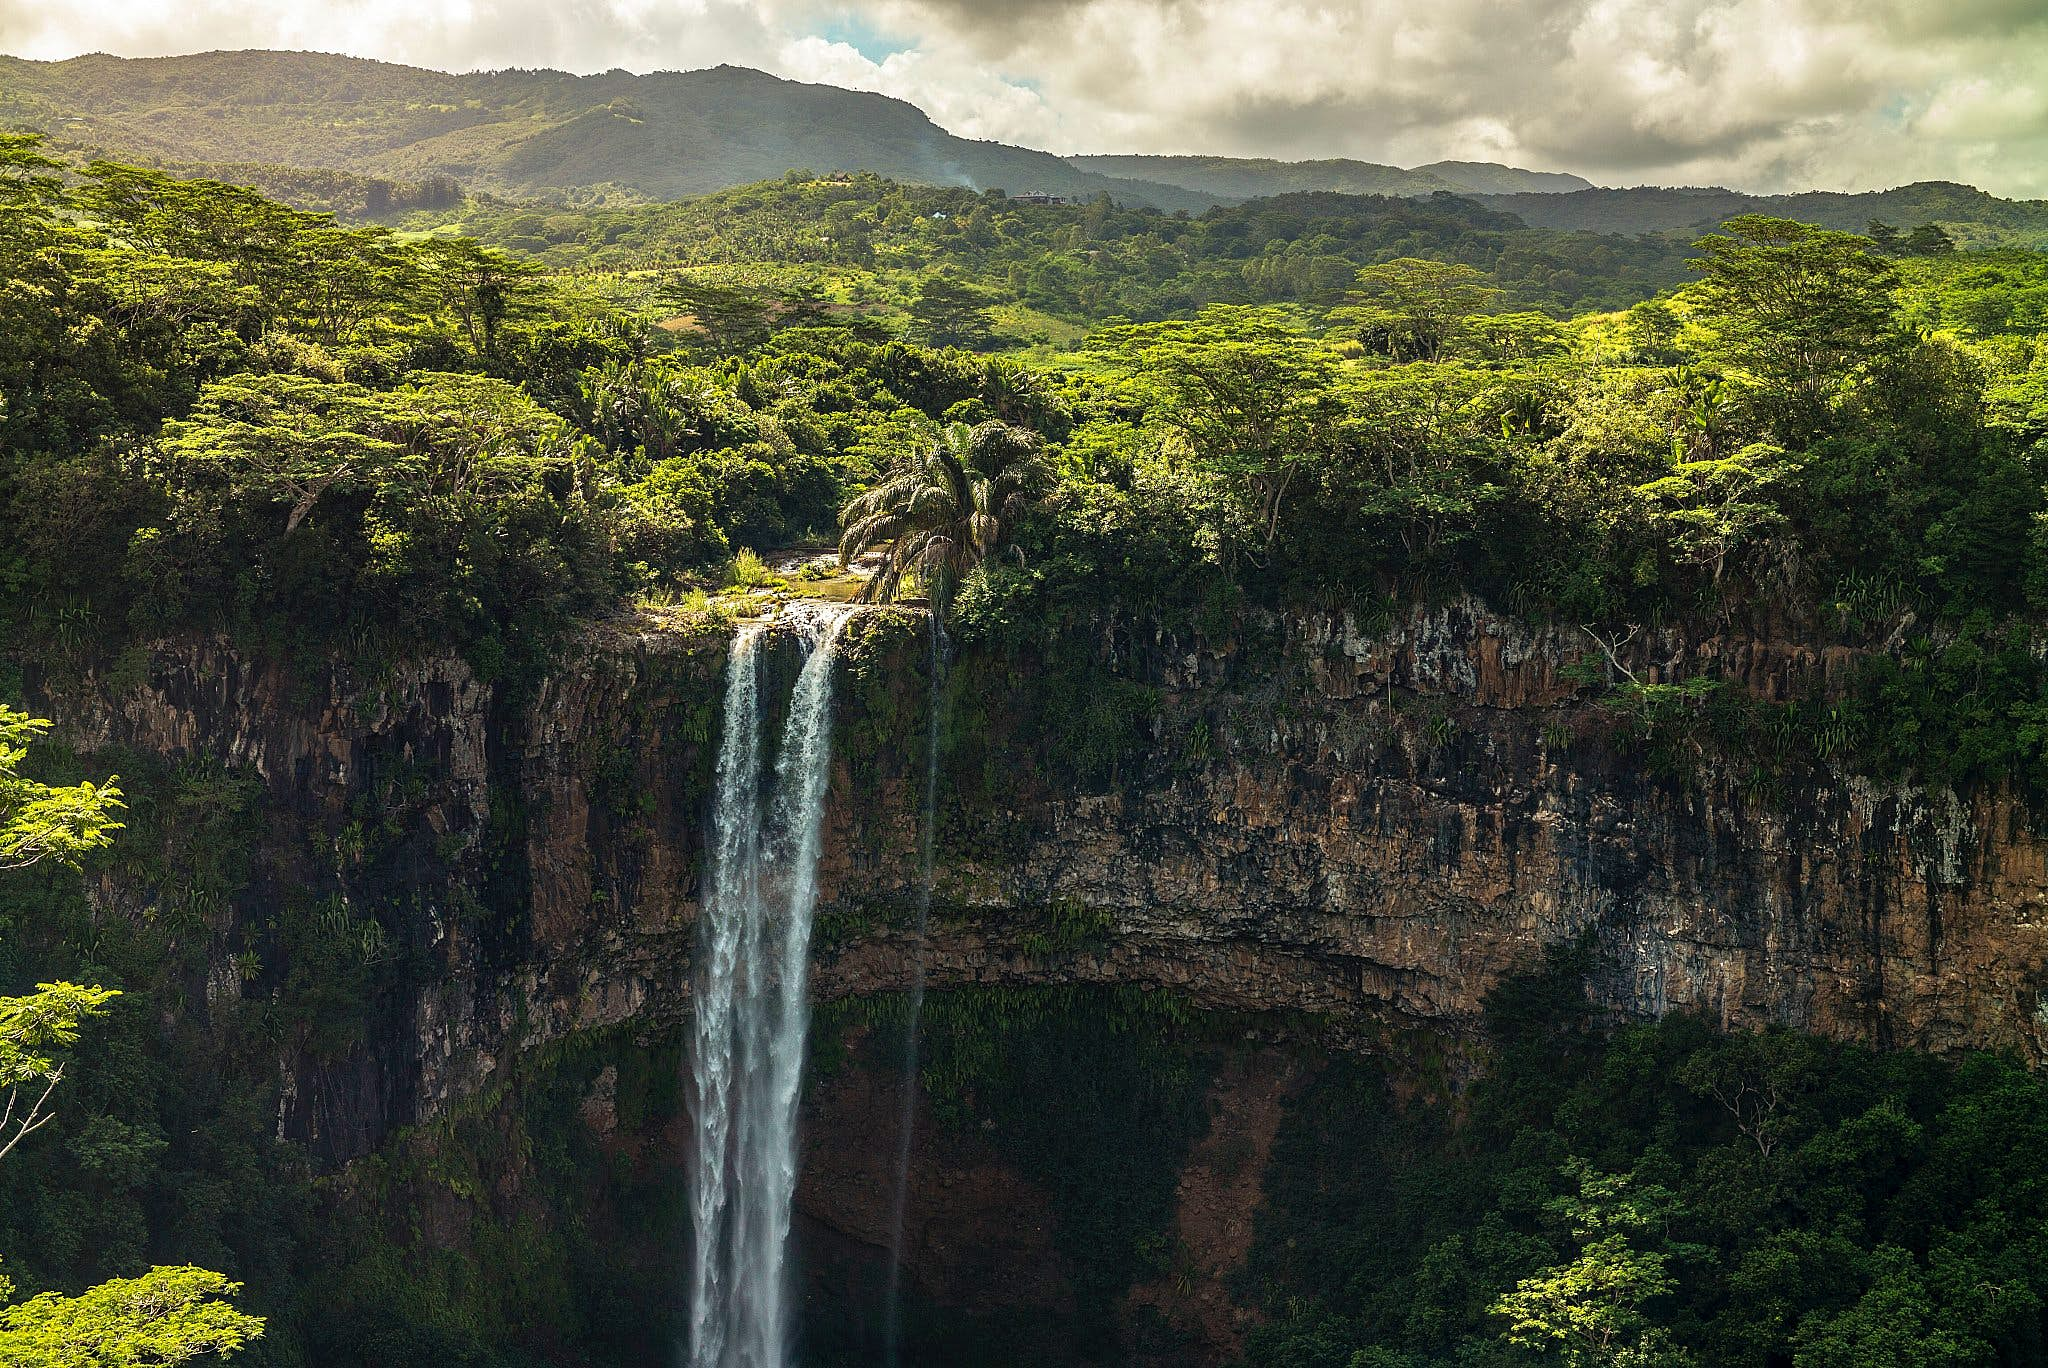 A waterfall cascades over a cliff face in front of verdant forest near Chamarel, Mauritius.